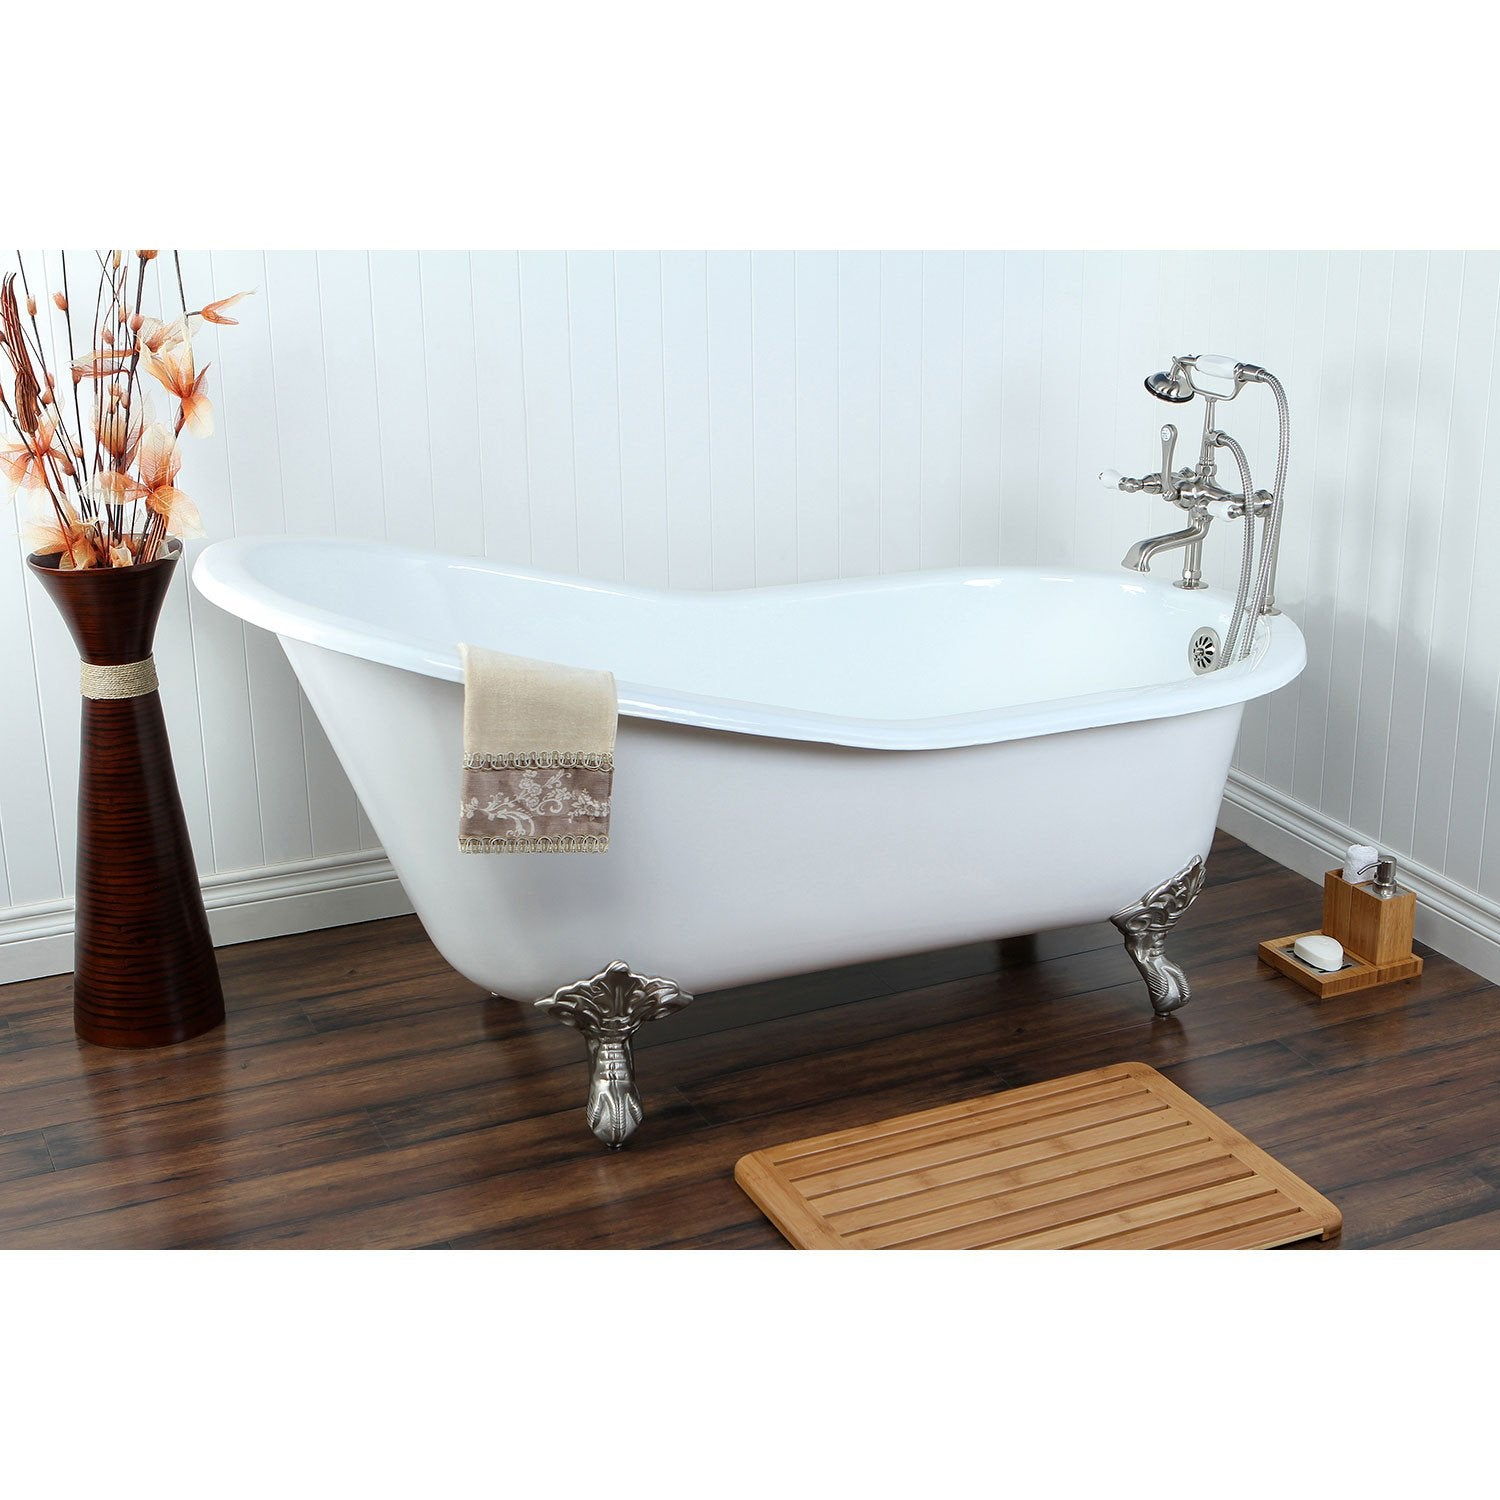 "61"" Clawfoot Tub with Satin Nickel Tub Mount Faucet and Hardware Package CTP12"